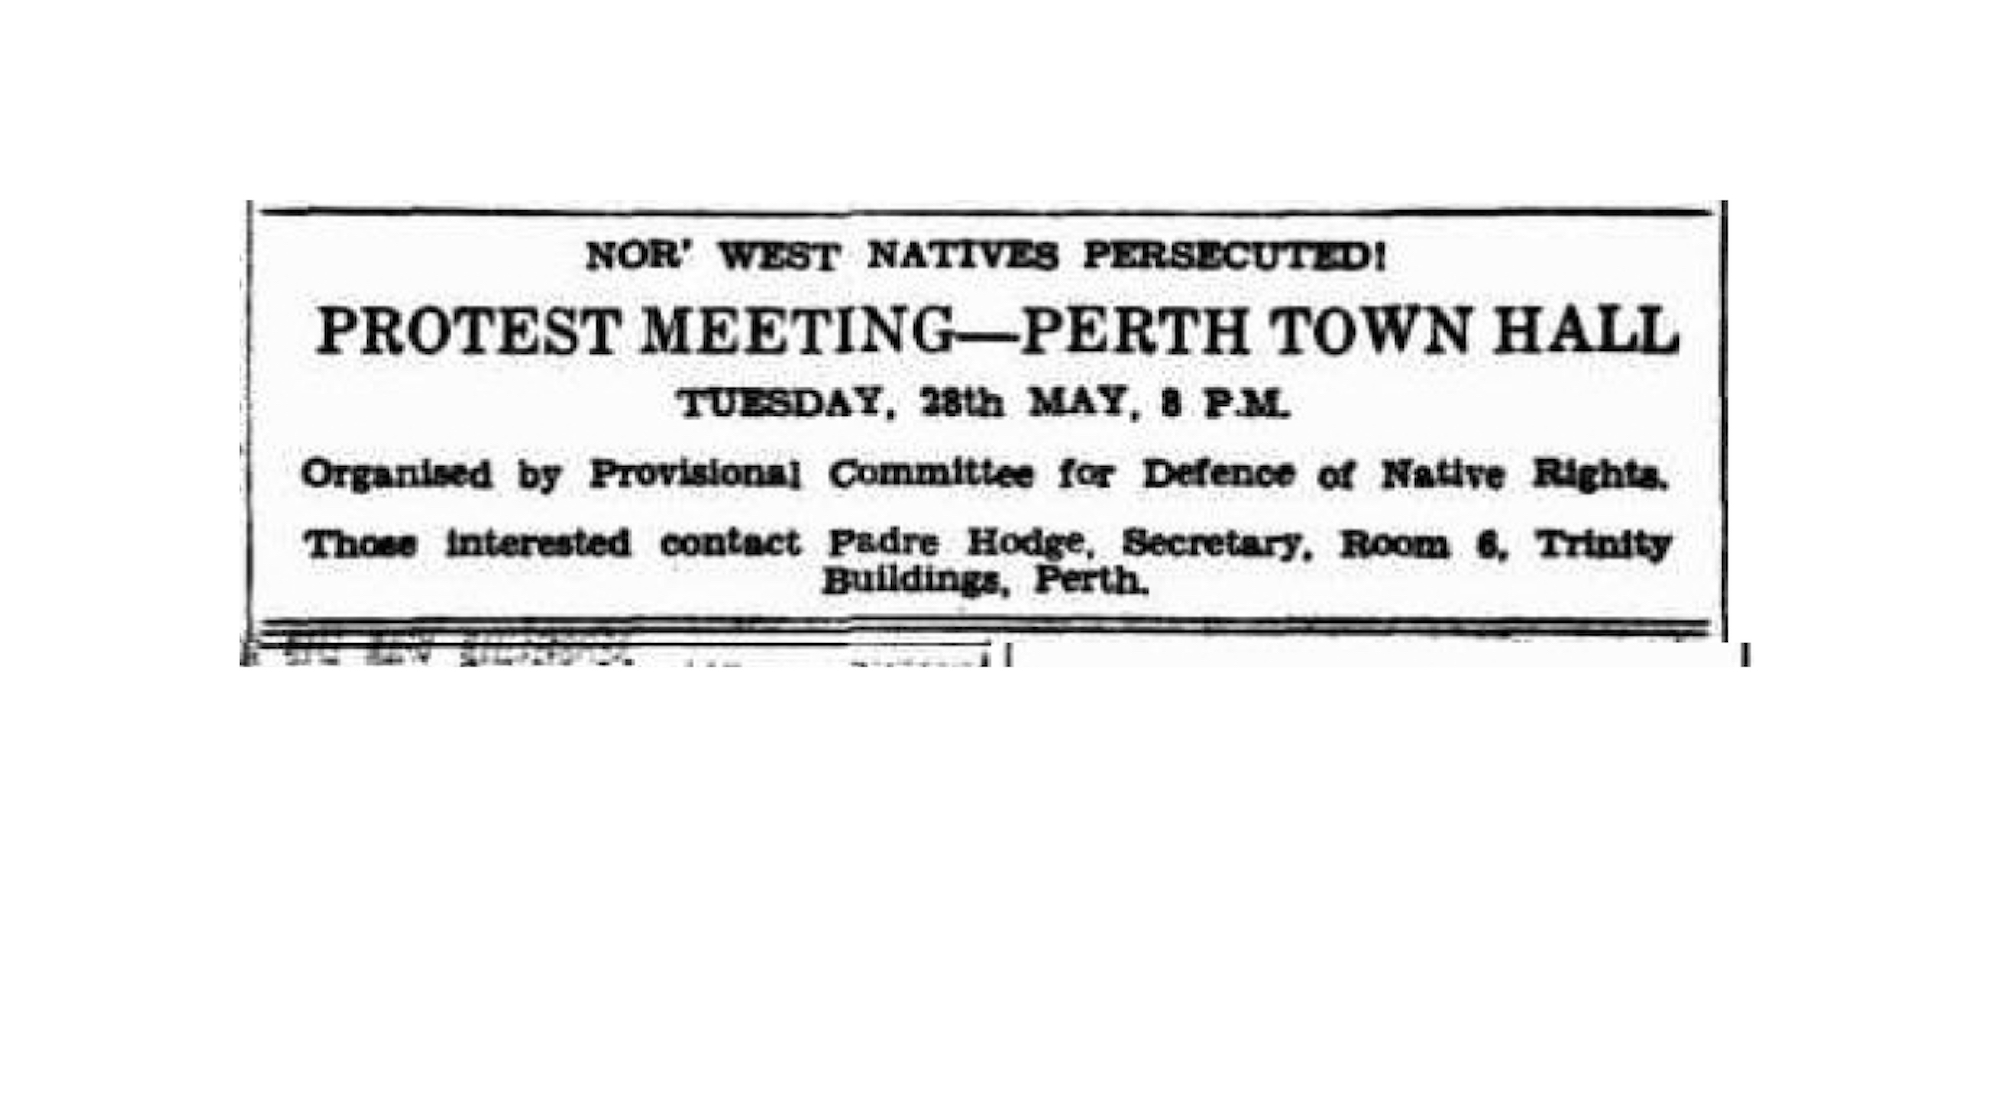 West Australian, 24 May 1946, advertisement 'Nor' West Natives Persecuted.'